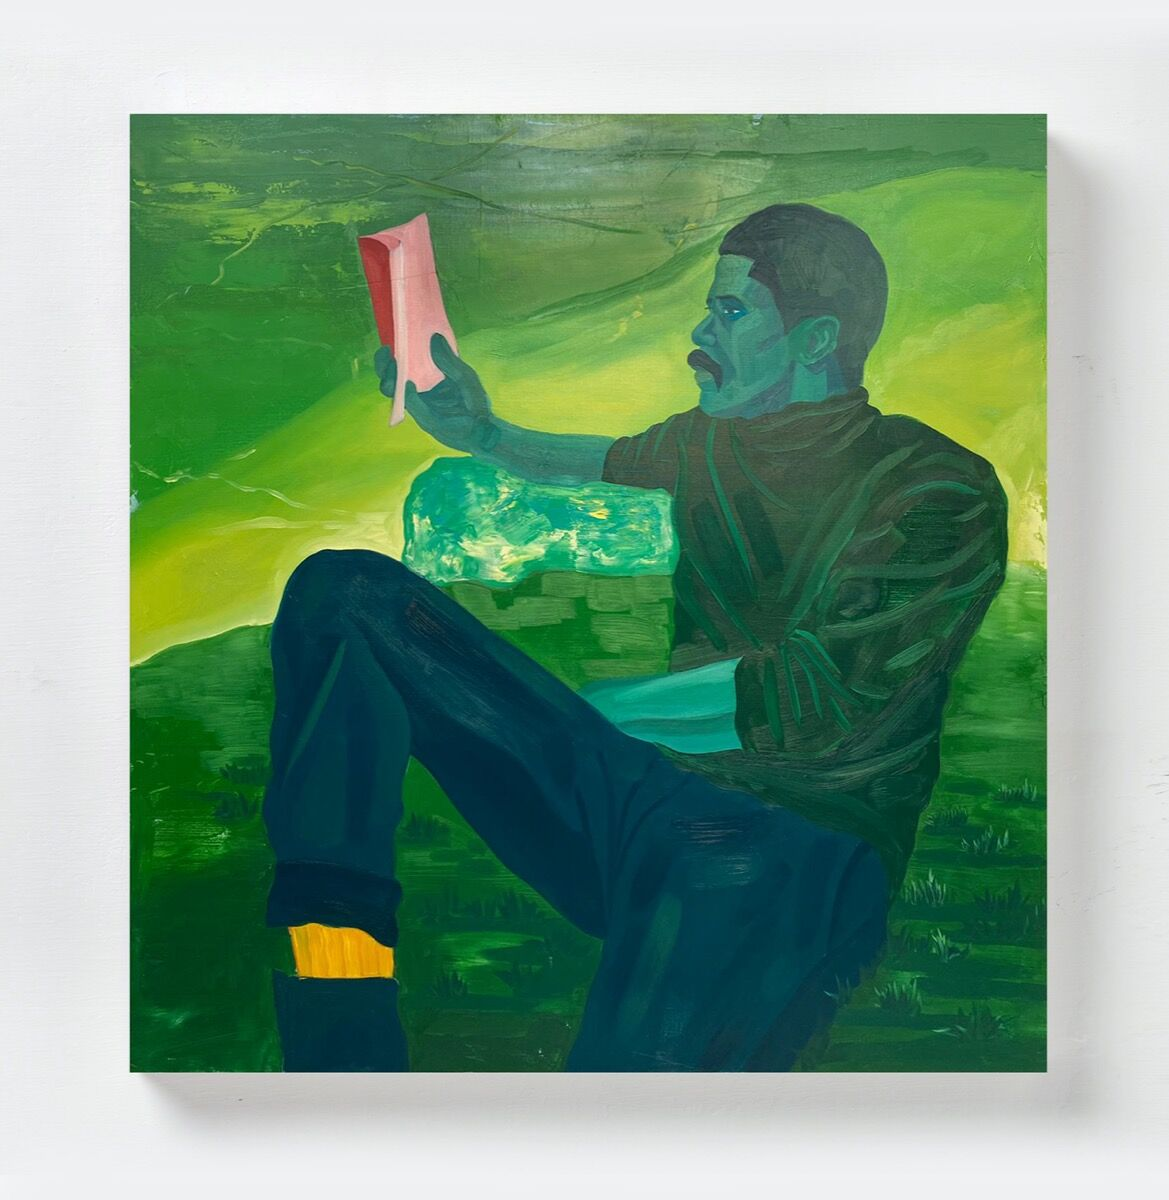 Dominic Chambers, Untitled (Kevin in Green), 2020. Courtesy of the artist and Luce Gallery.